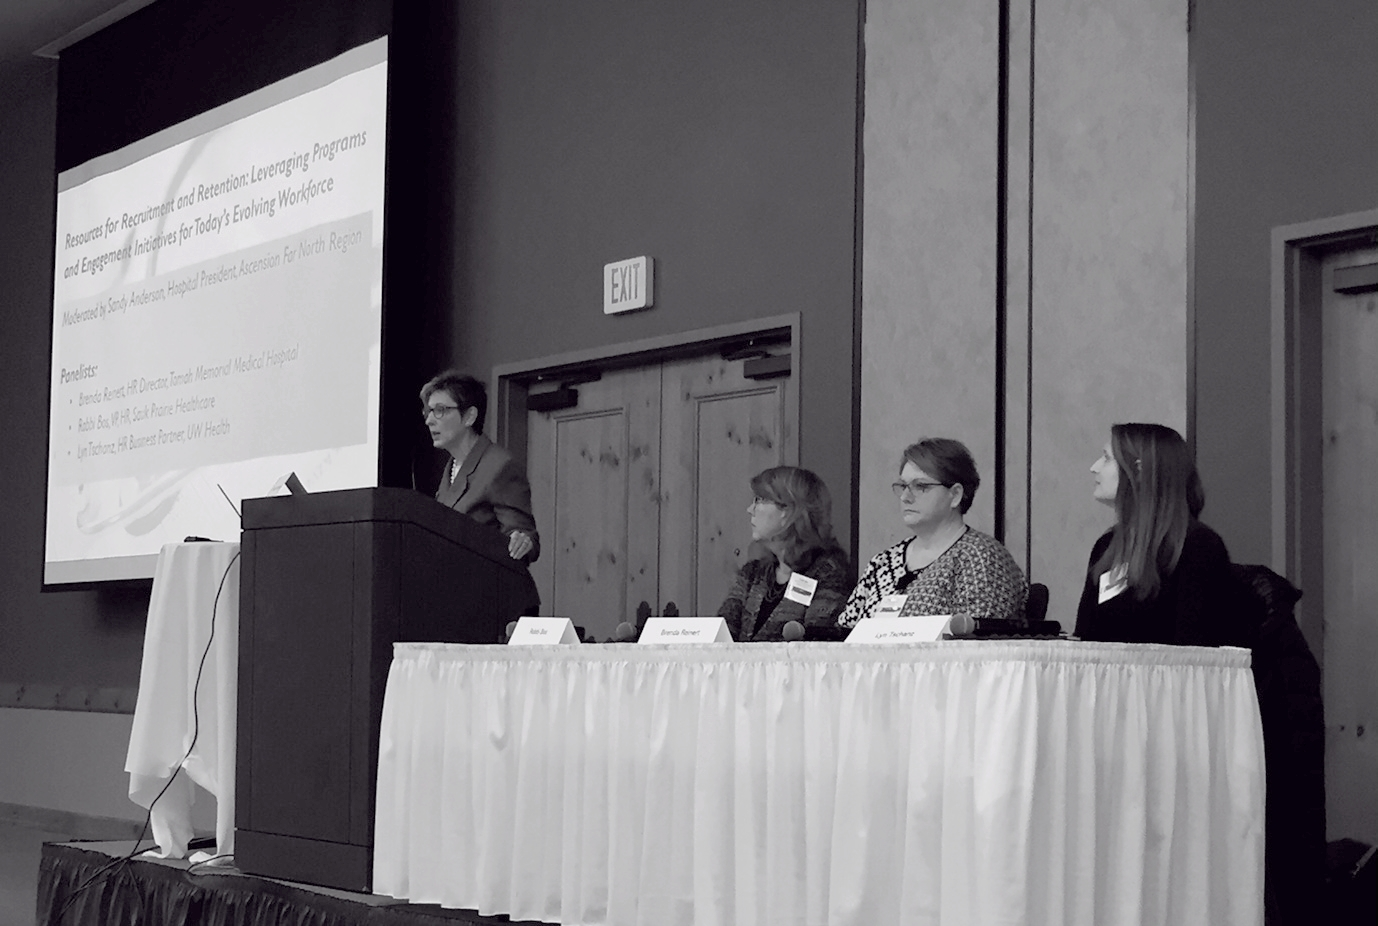 Sandy Anderson (Ascension North), addresses panelists Robbi Bos (Sauk Prairie Healthcare), Brenda Reinert (Tomah Memorial Medical), and Lyn Tschanz (UW Health), discussing provider retention initiatives.